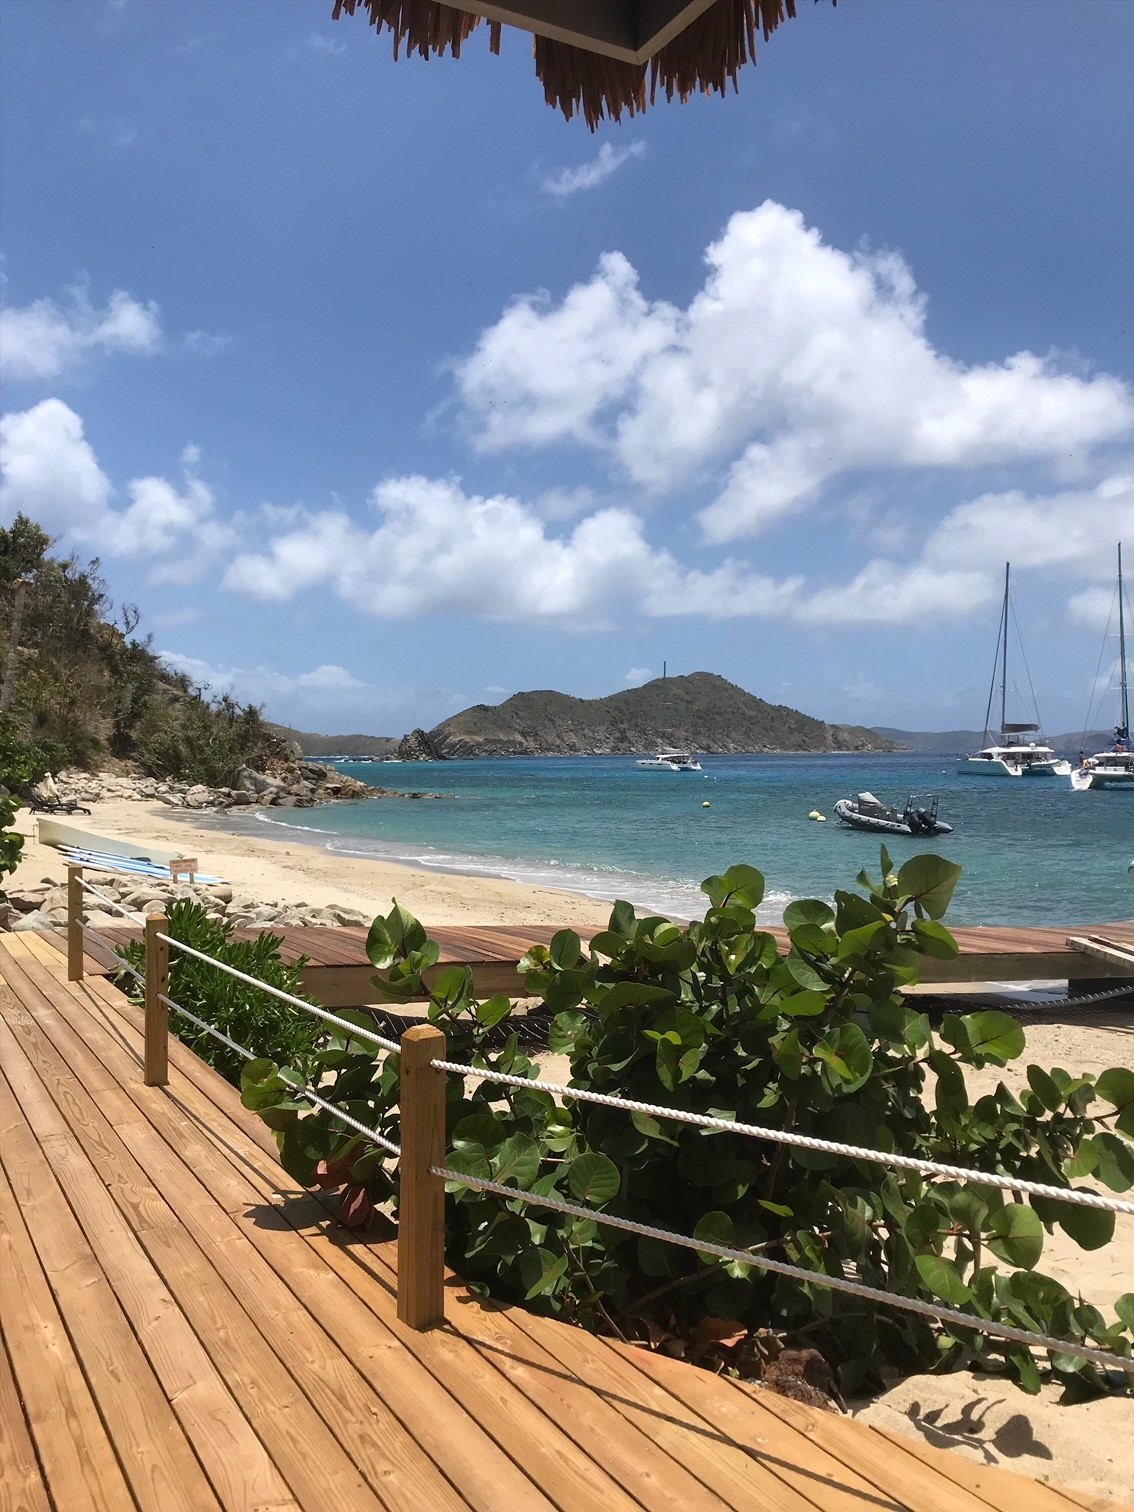 What to do in the BVI - top activities that should not be missed! Sun downers at Cooper Island